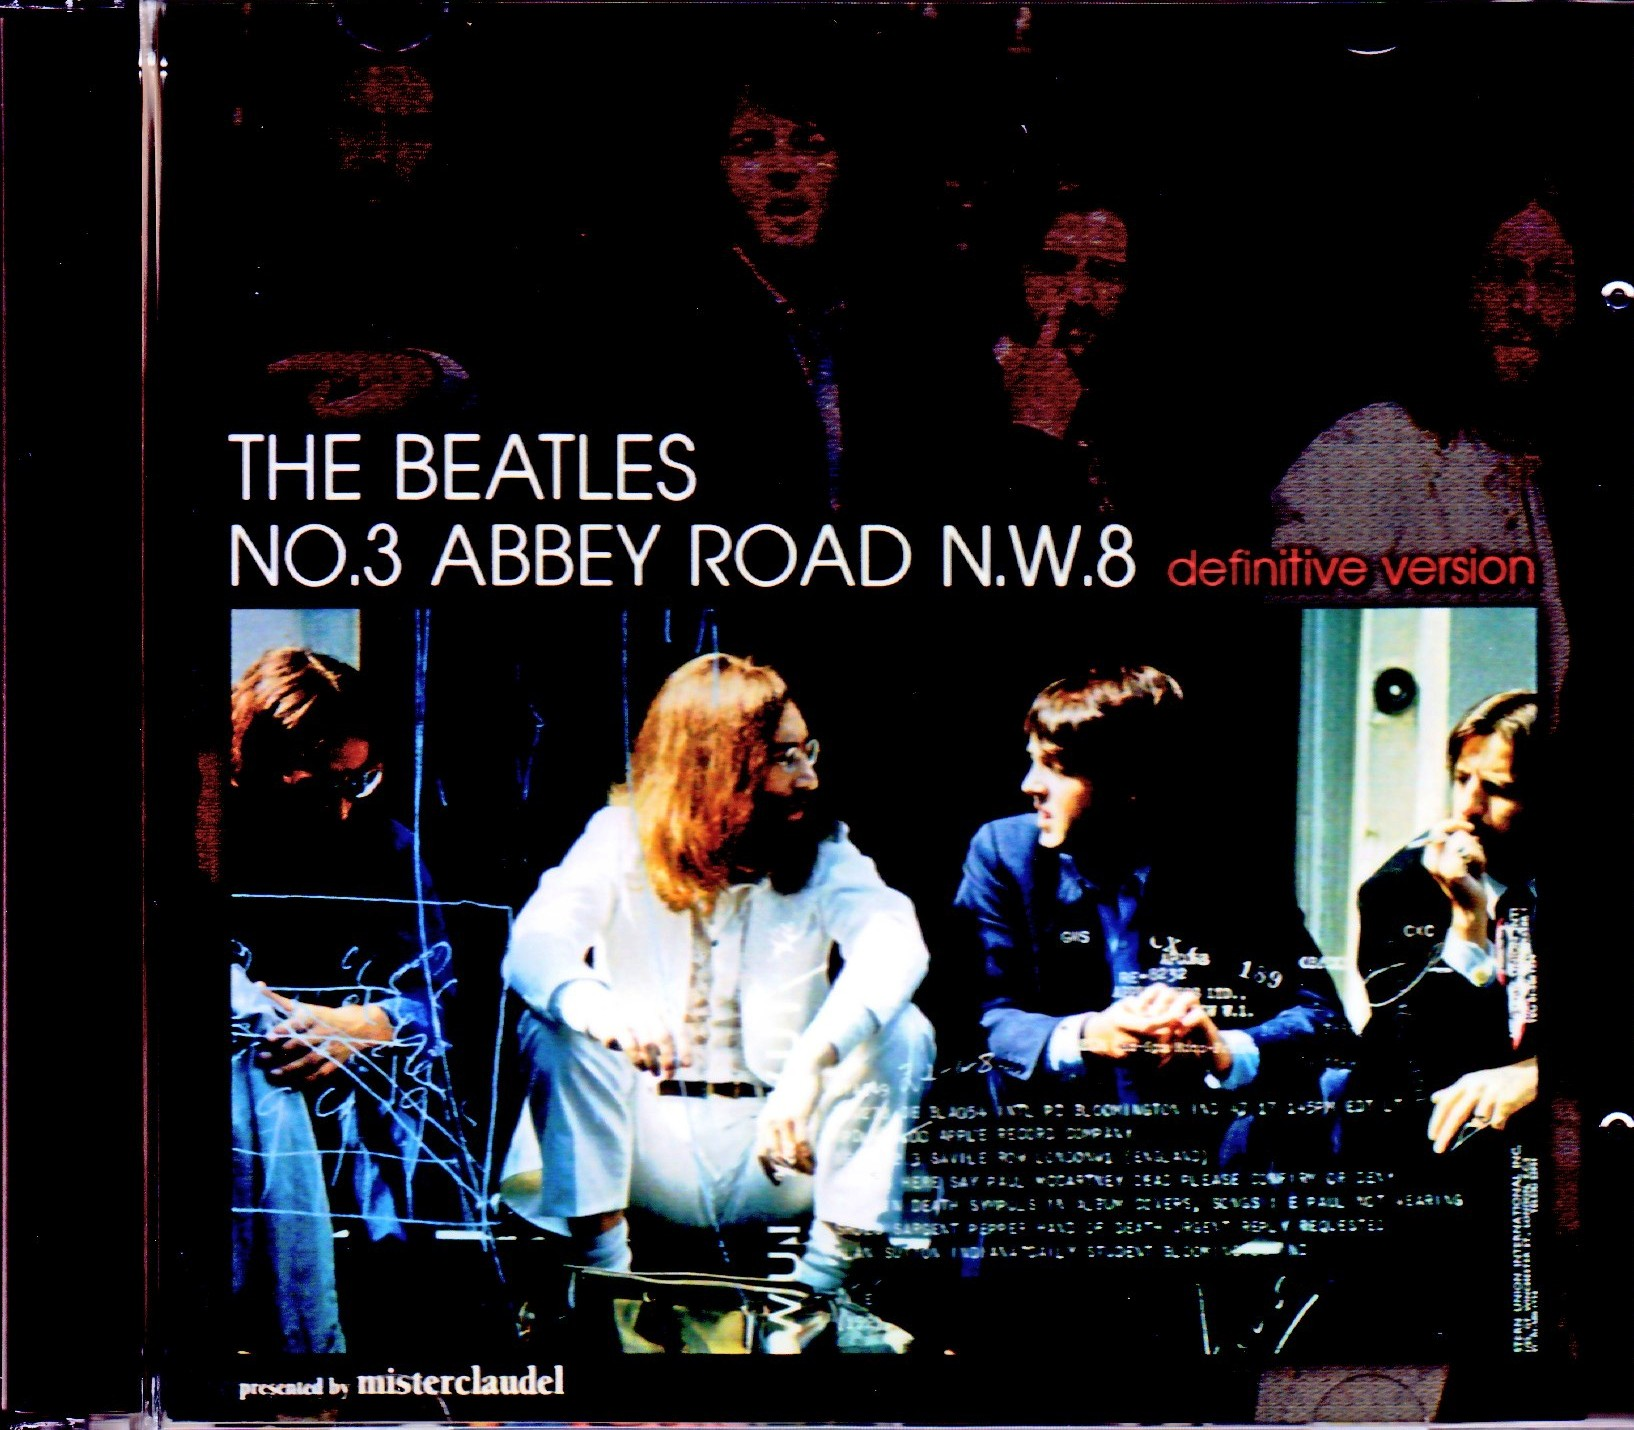 Beatles ビートルズ/No.3 Abbey Road N.W.8 Definitive Version